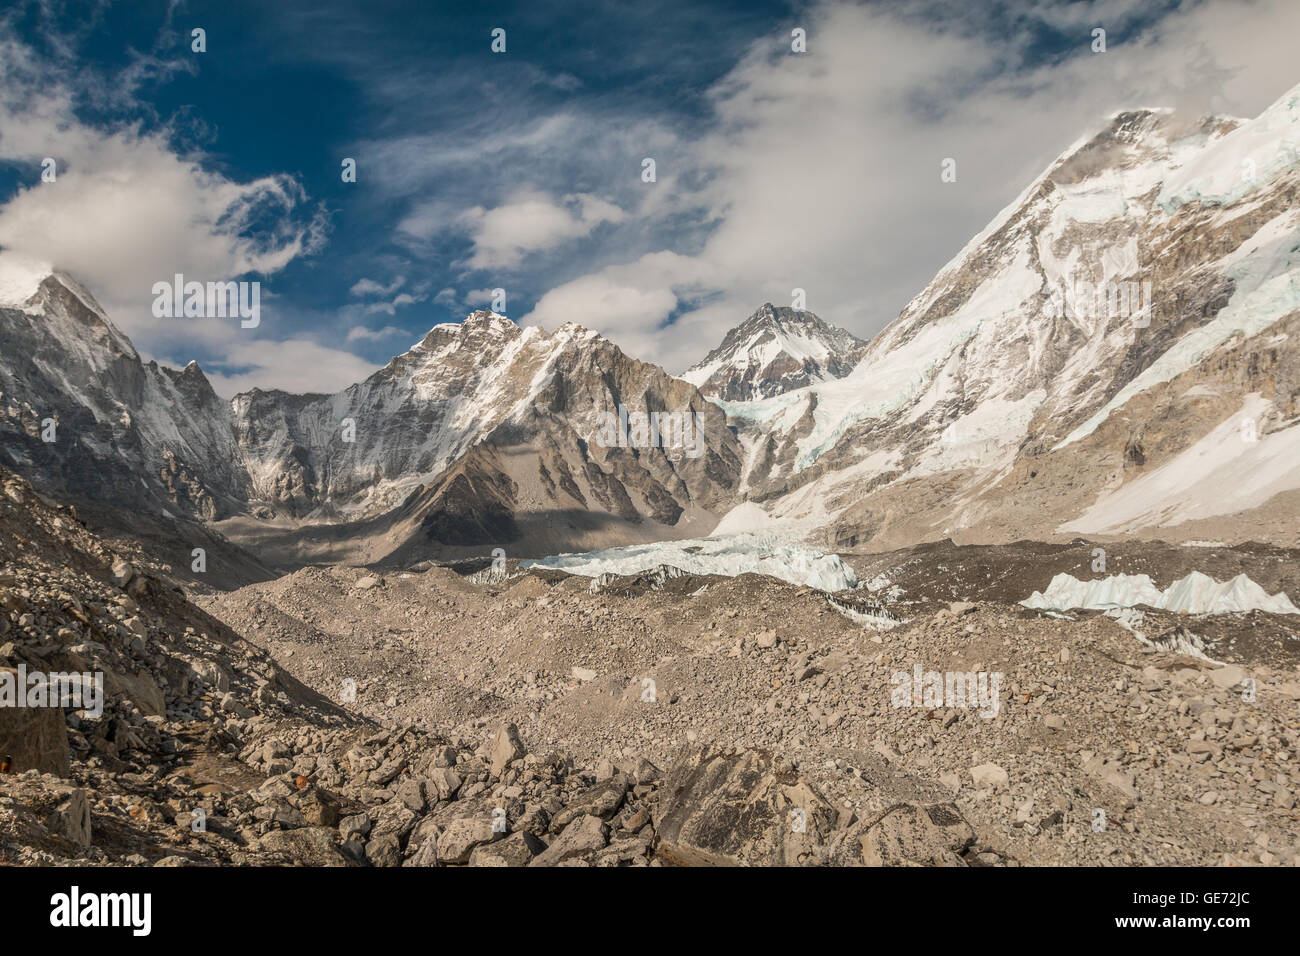 Everest base camp trek in Himalayas Nepal - Stock Image